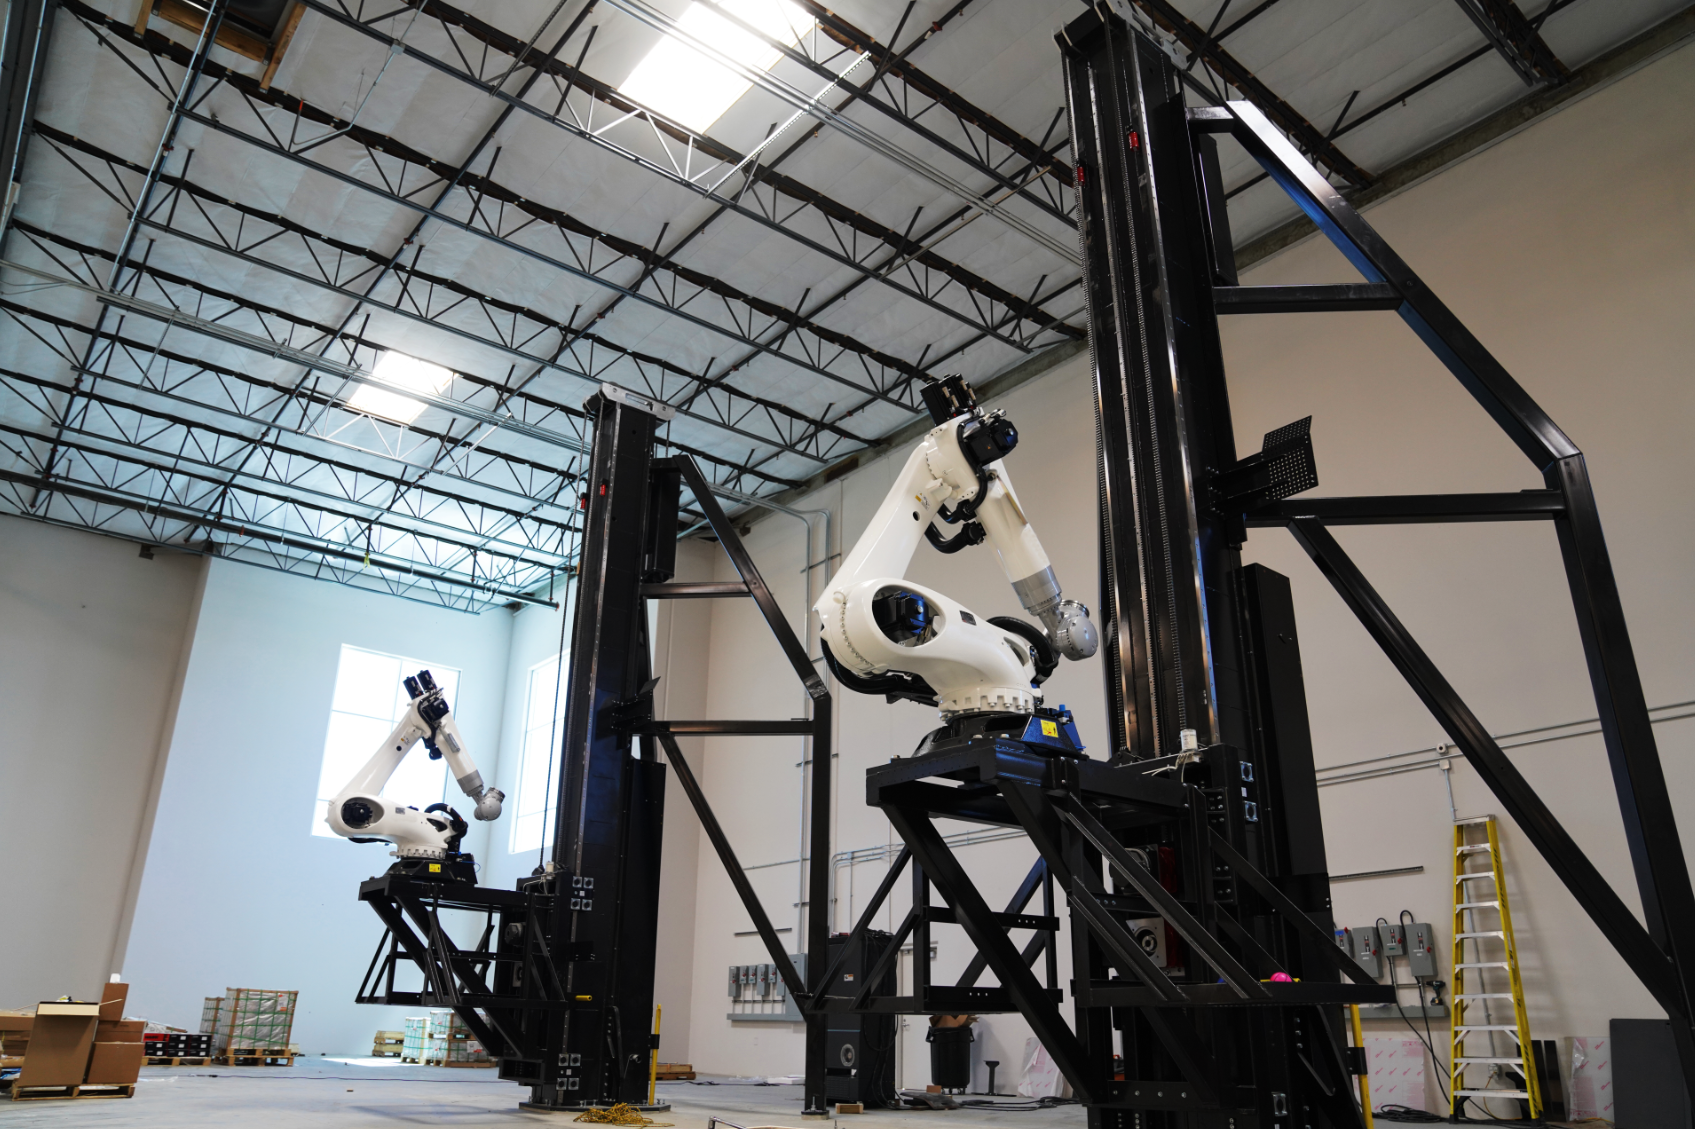 Relativity Space has made considerable progress towards the development of a fully-3D printed rocket in recent years. Photo via Relativity Space.